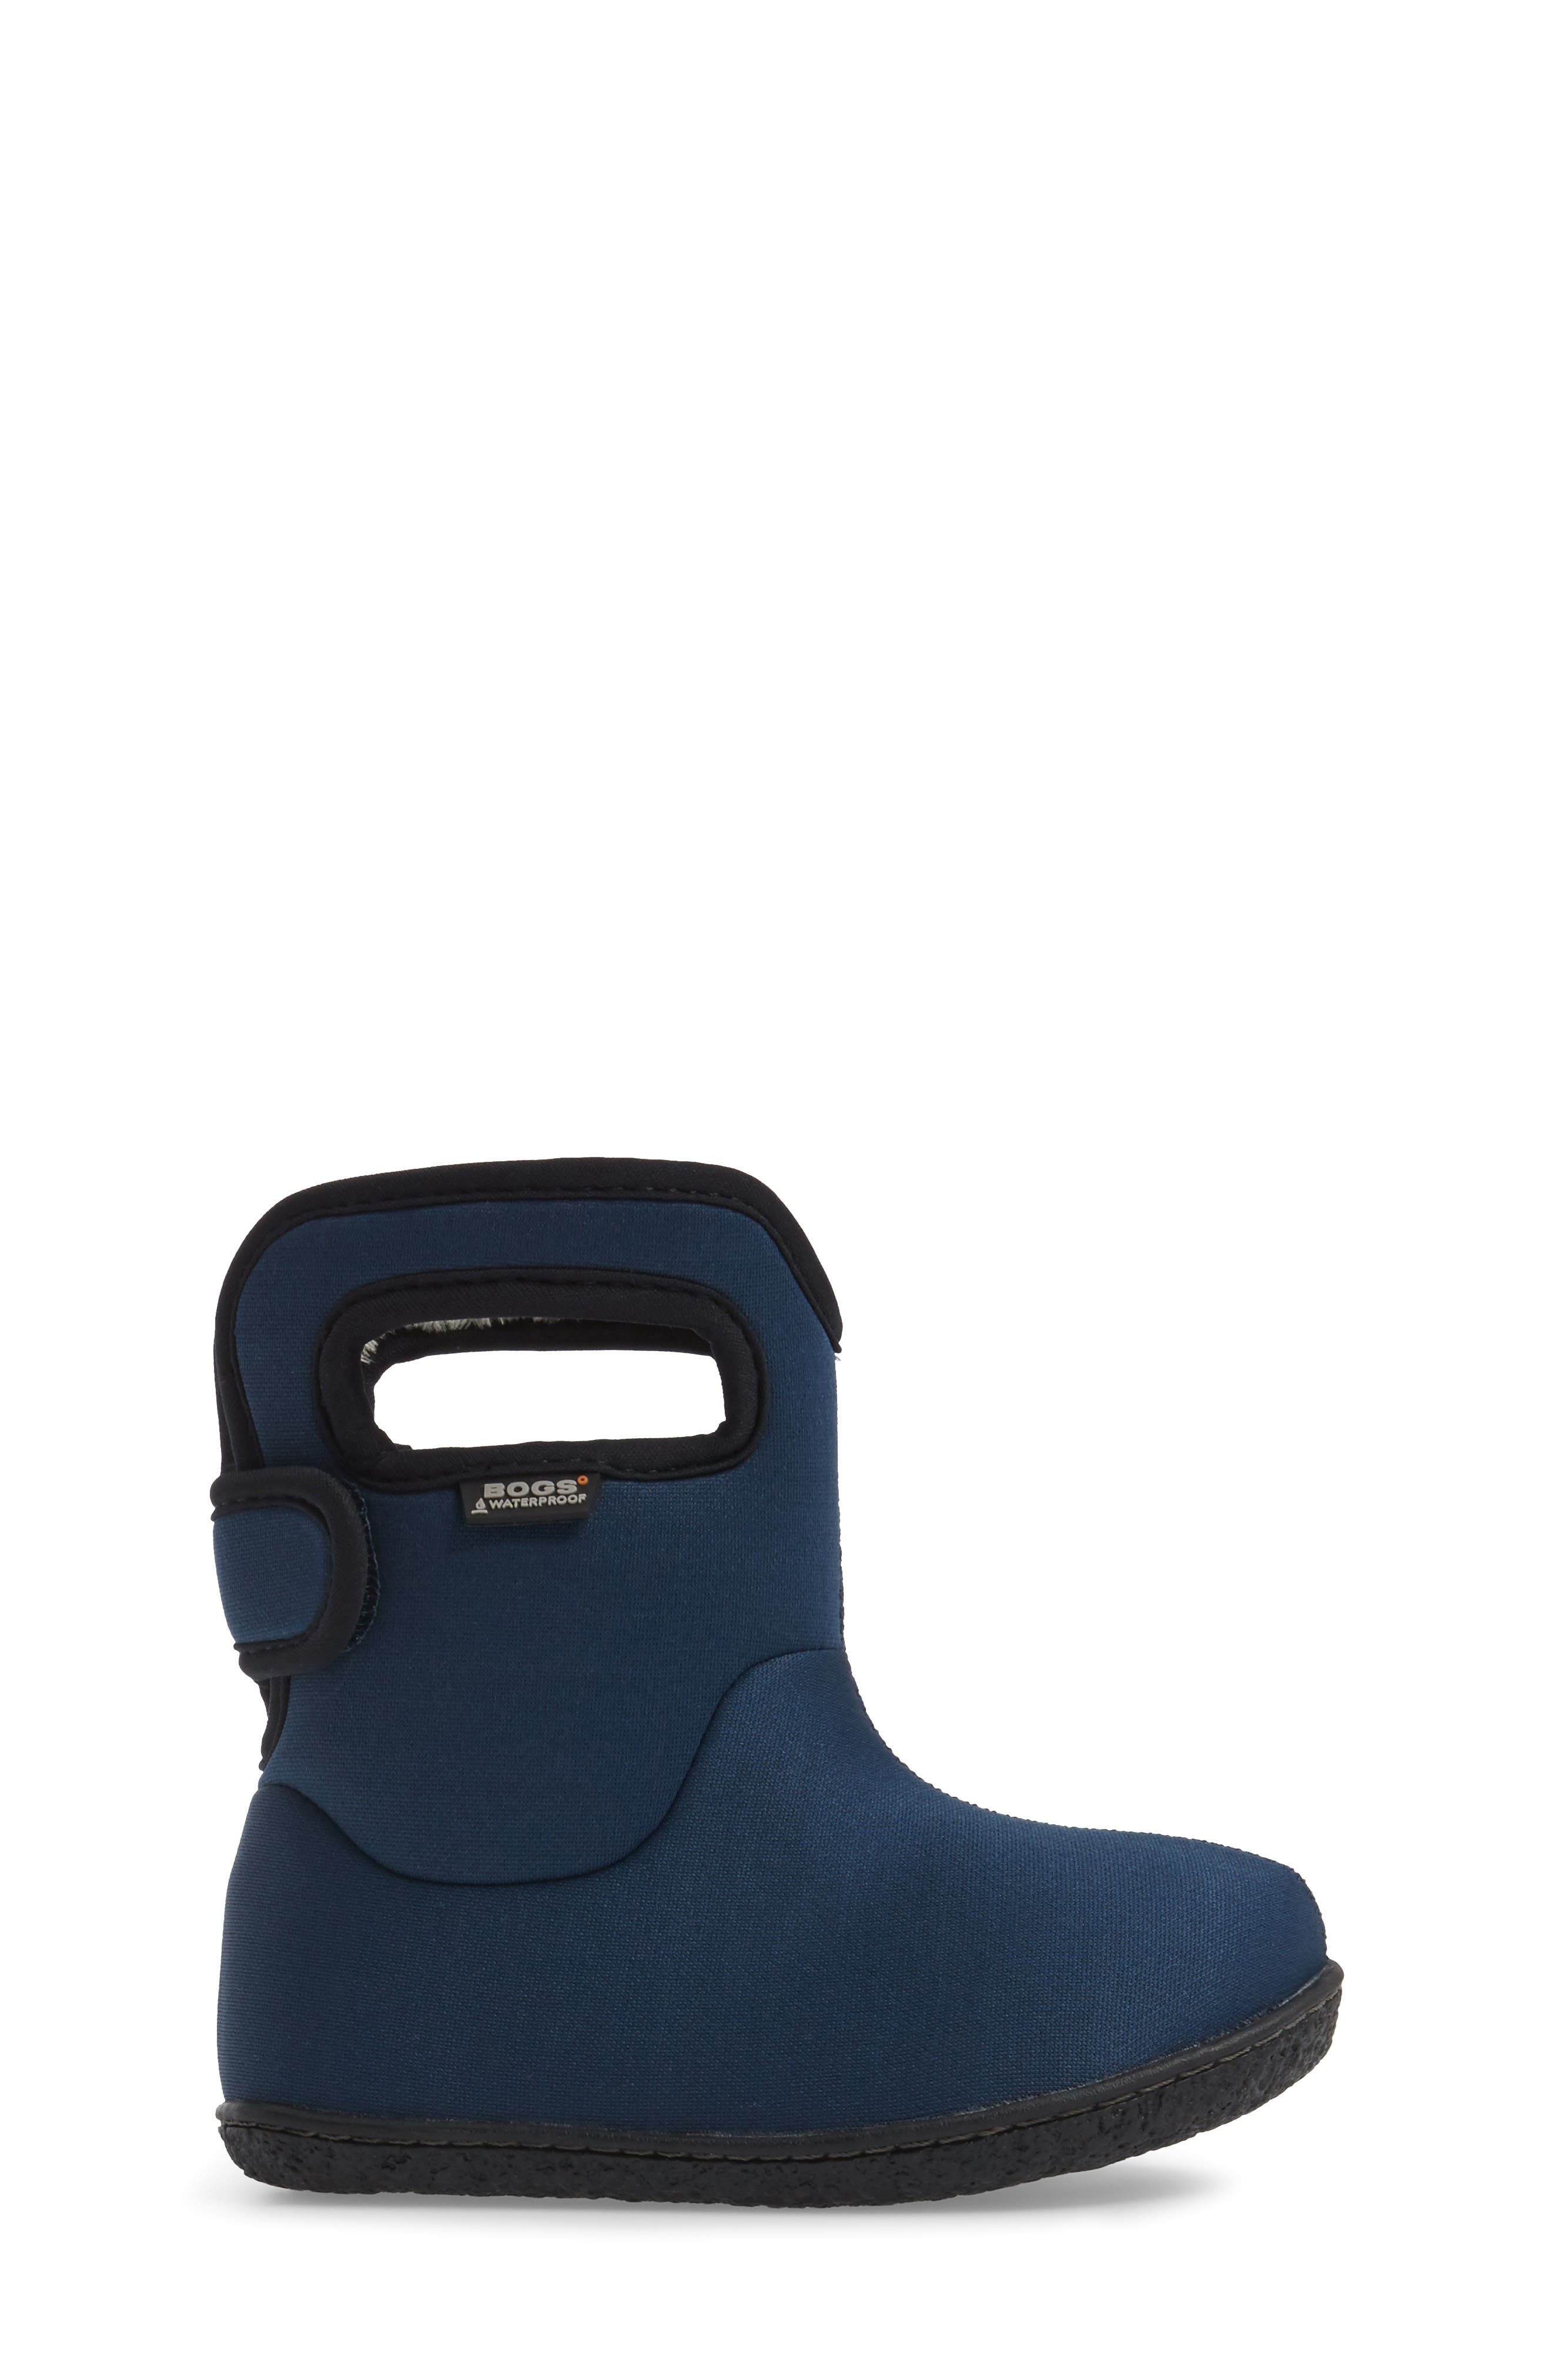 Alternate Image 3  - Bogs Classic Solid Insulated Waterproof Rain Boot (Baby, Walker & Toddler)